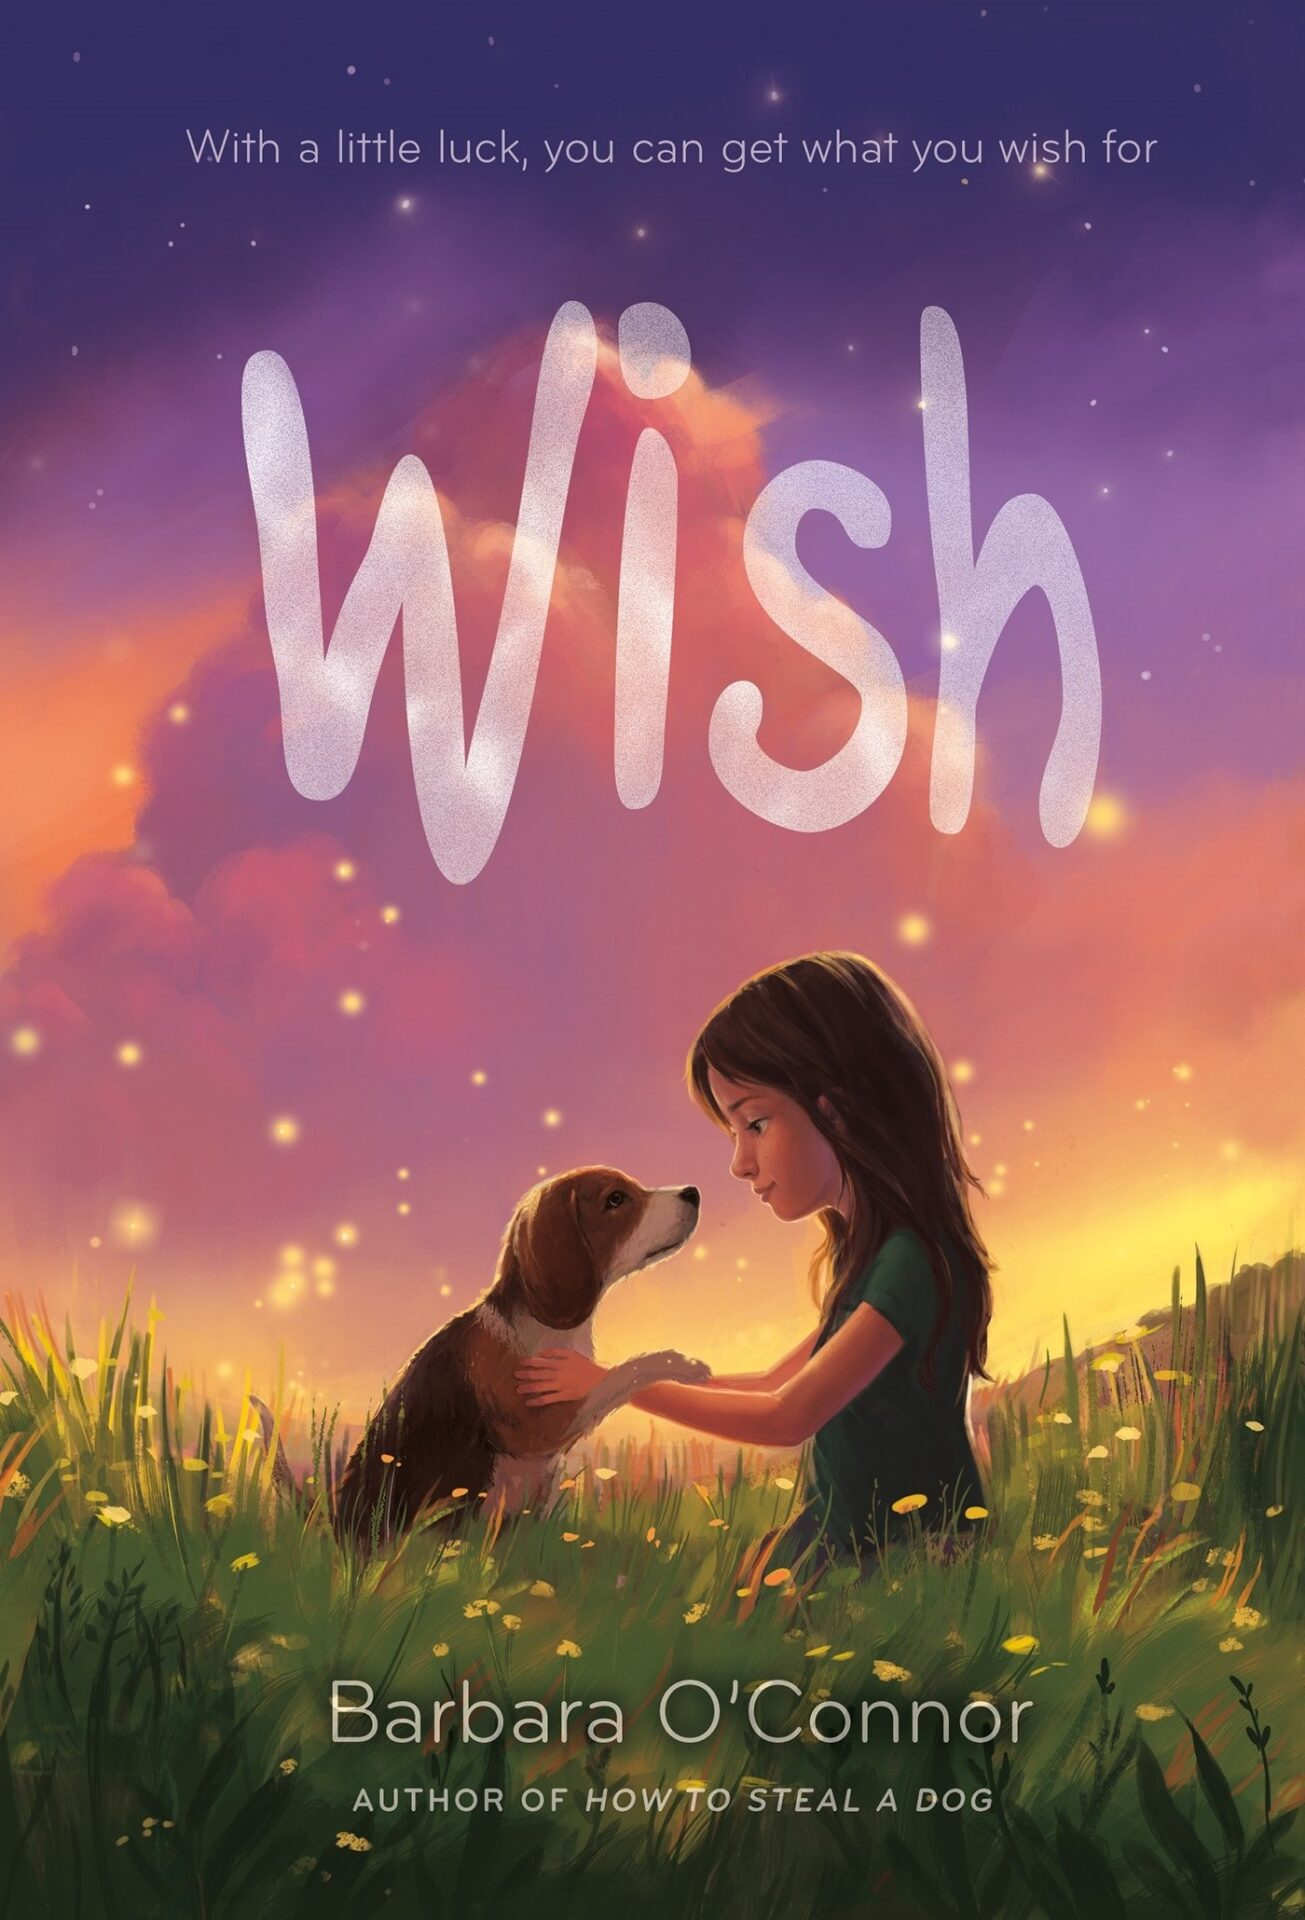 Wish book for 9 year old kids